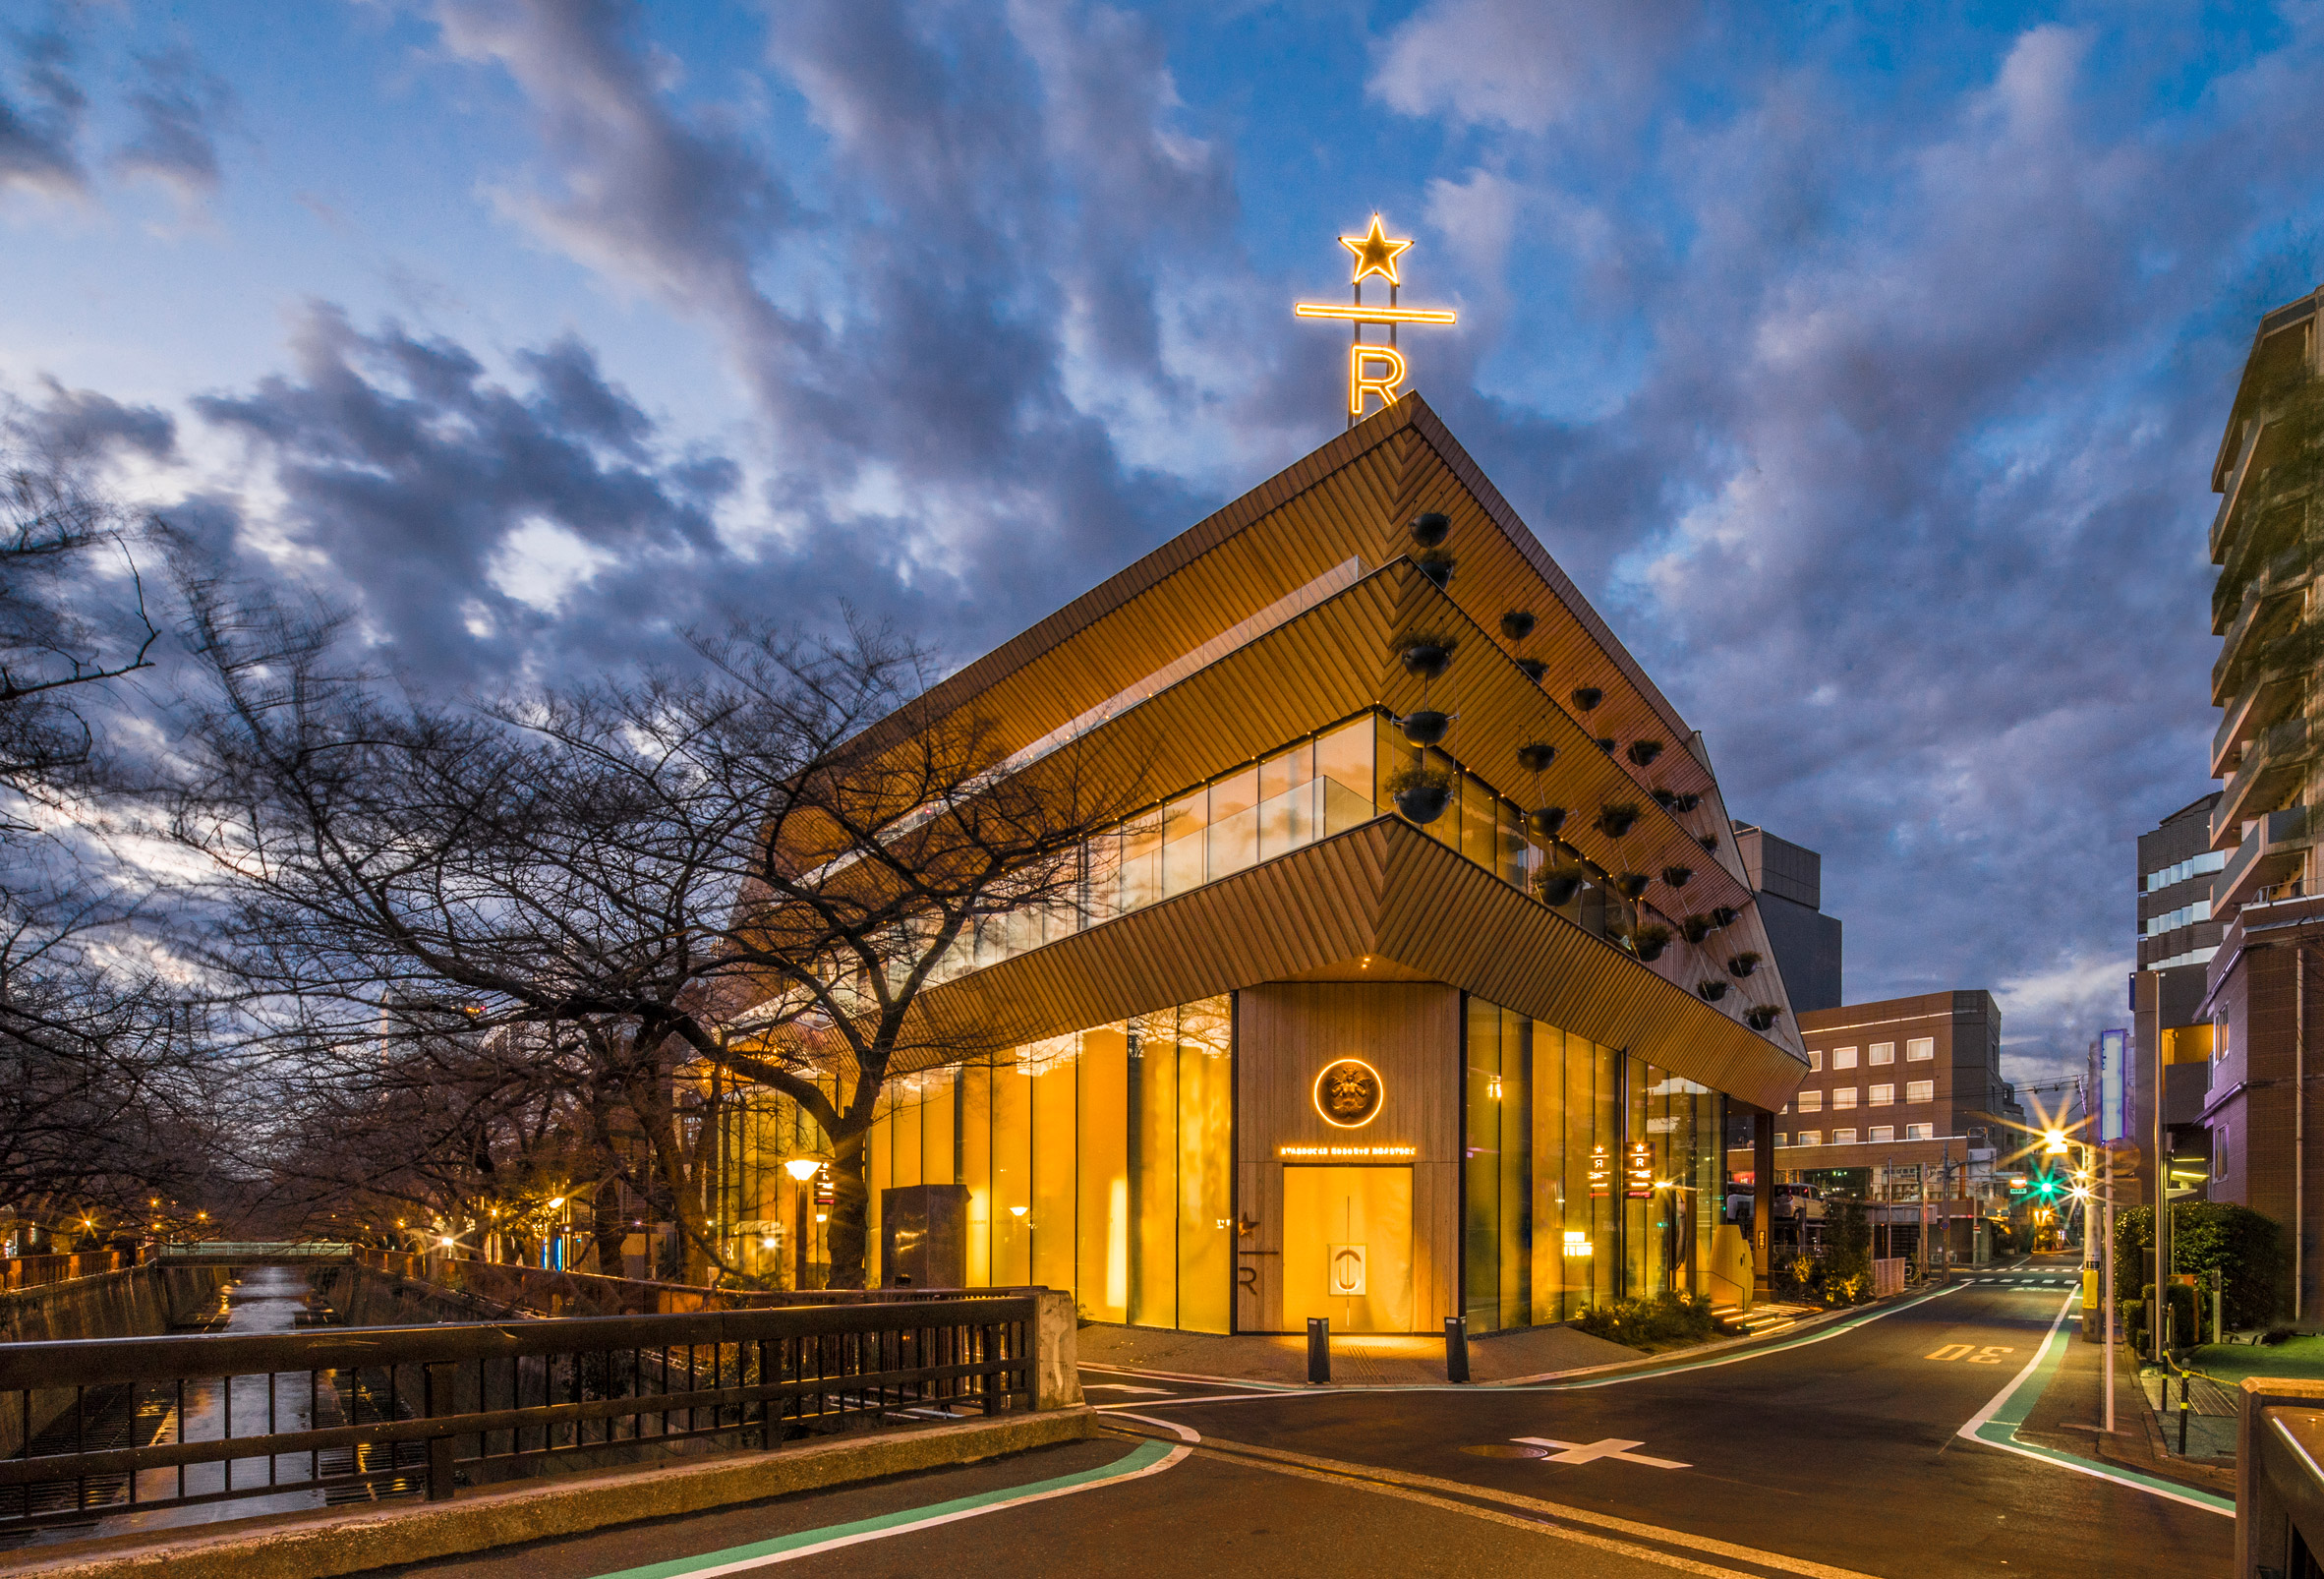 Exterior of Starbucks Reserve Roastery Tokyo, desinged by Kengo Kuma